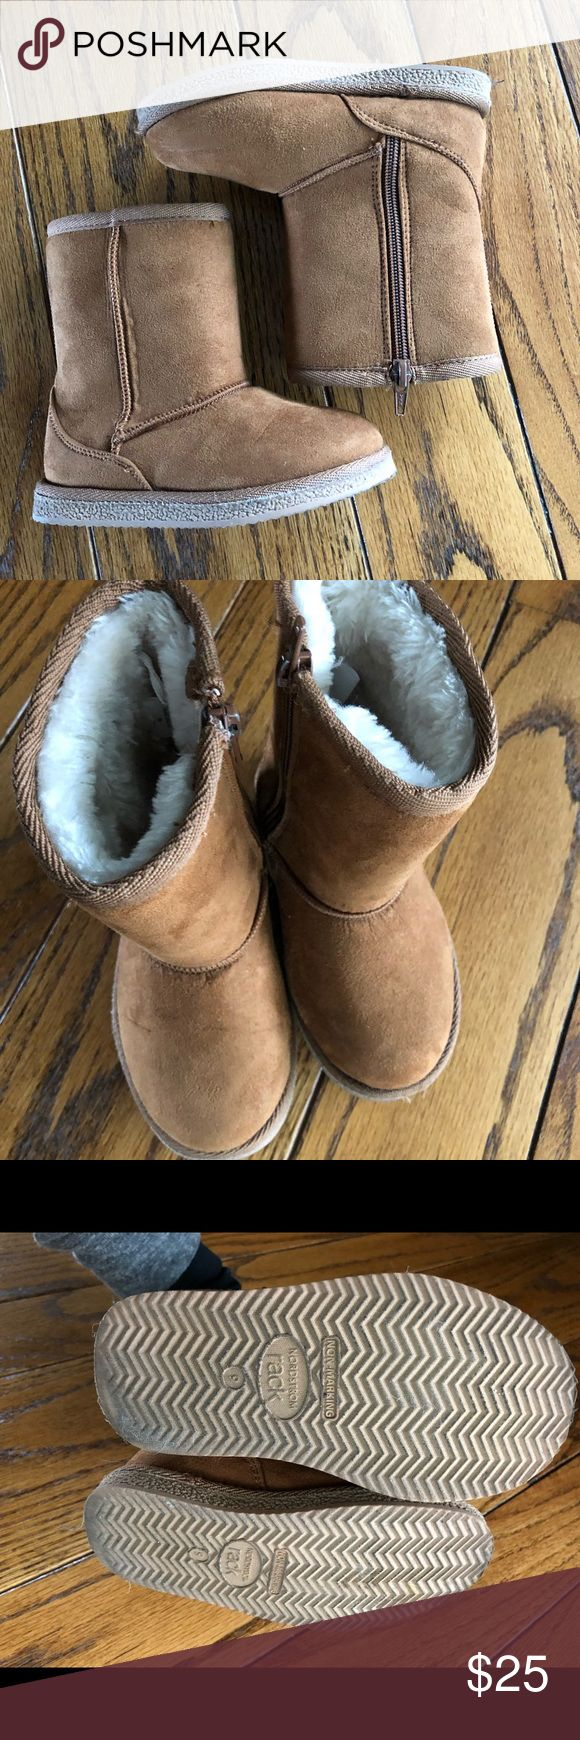 Nordstrom Rack brand UGG boots Nordstrom Rack brand UGG like boots in kids size 9. In great condition with lots of life left. My daughter wore these only a couple times. Fluffy and comfy faux fur lining inside. UGG Shoes Boots